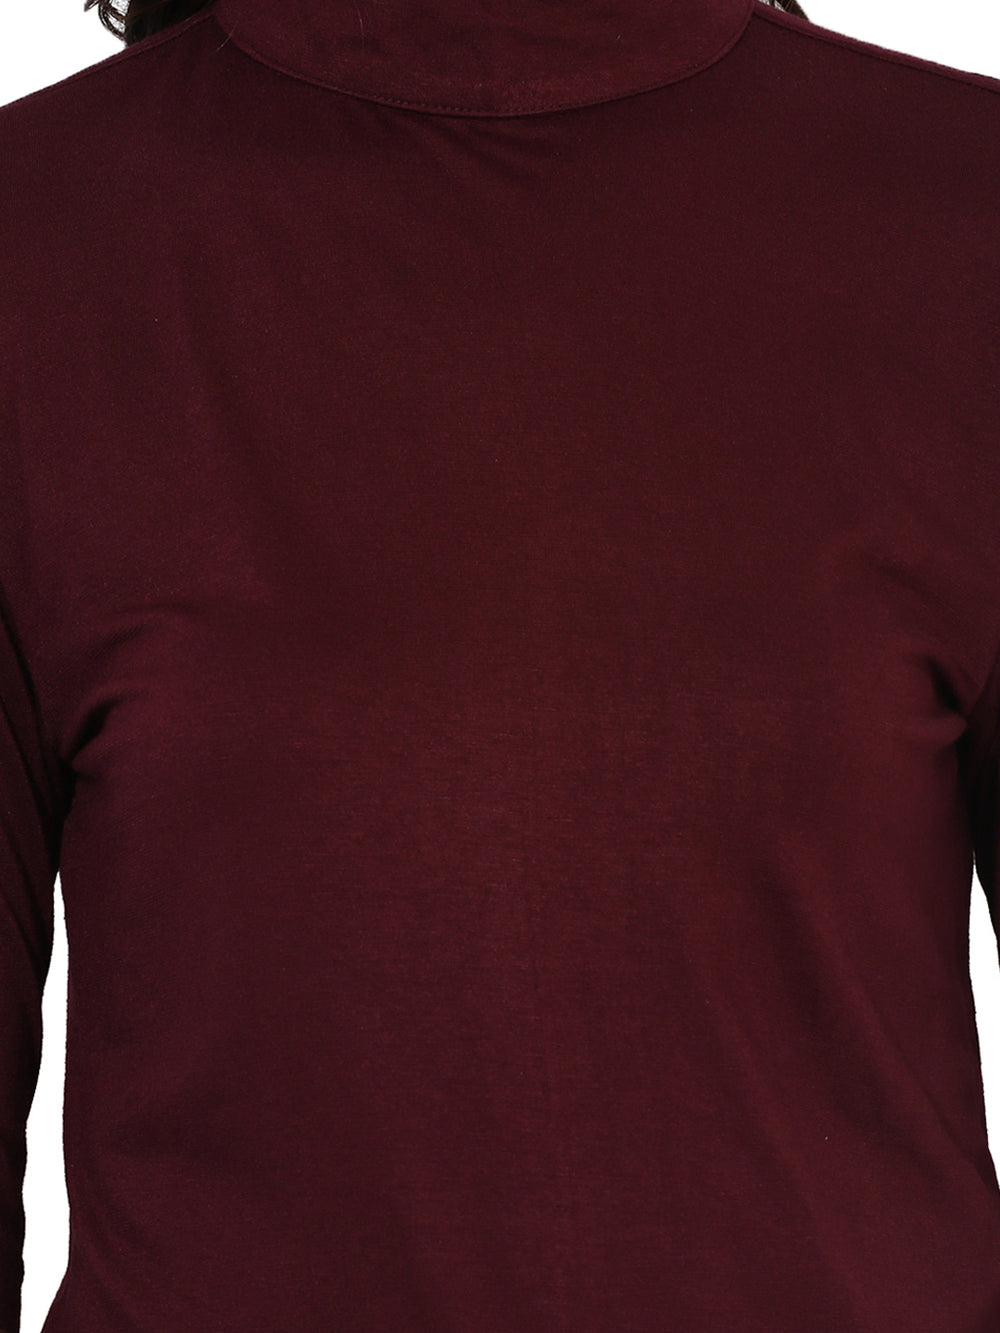 Besiva Women Maroon Solid Top